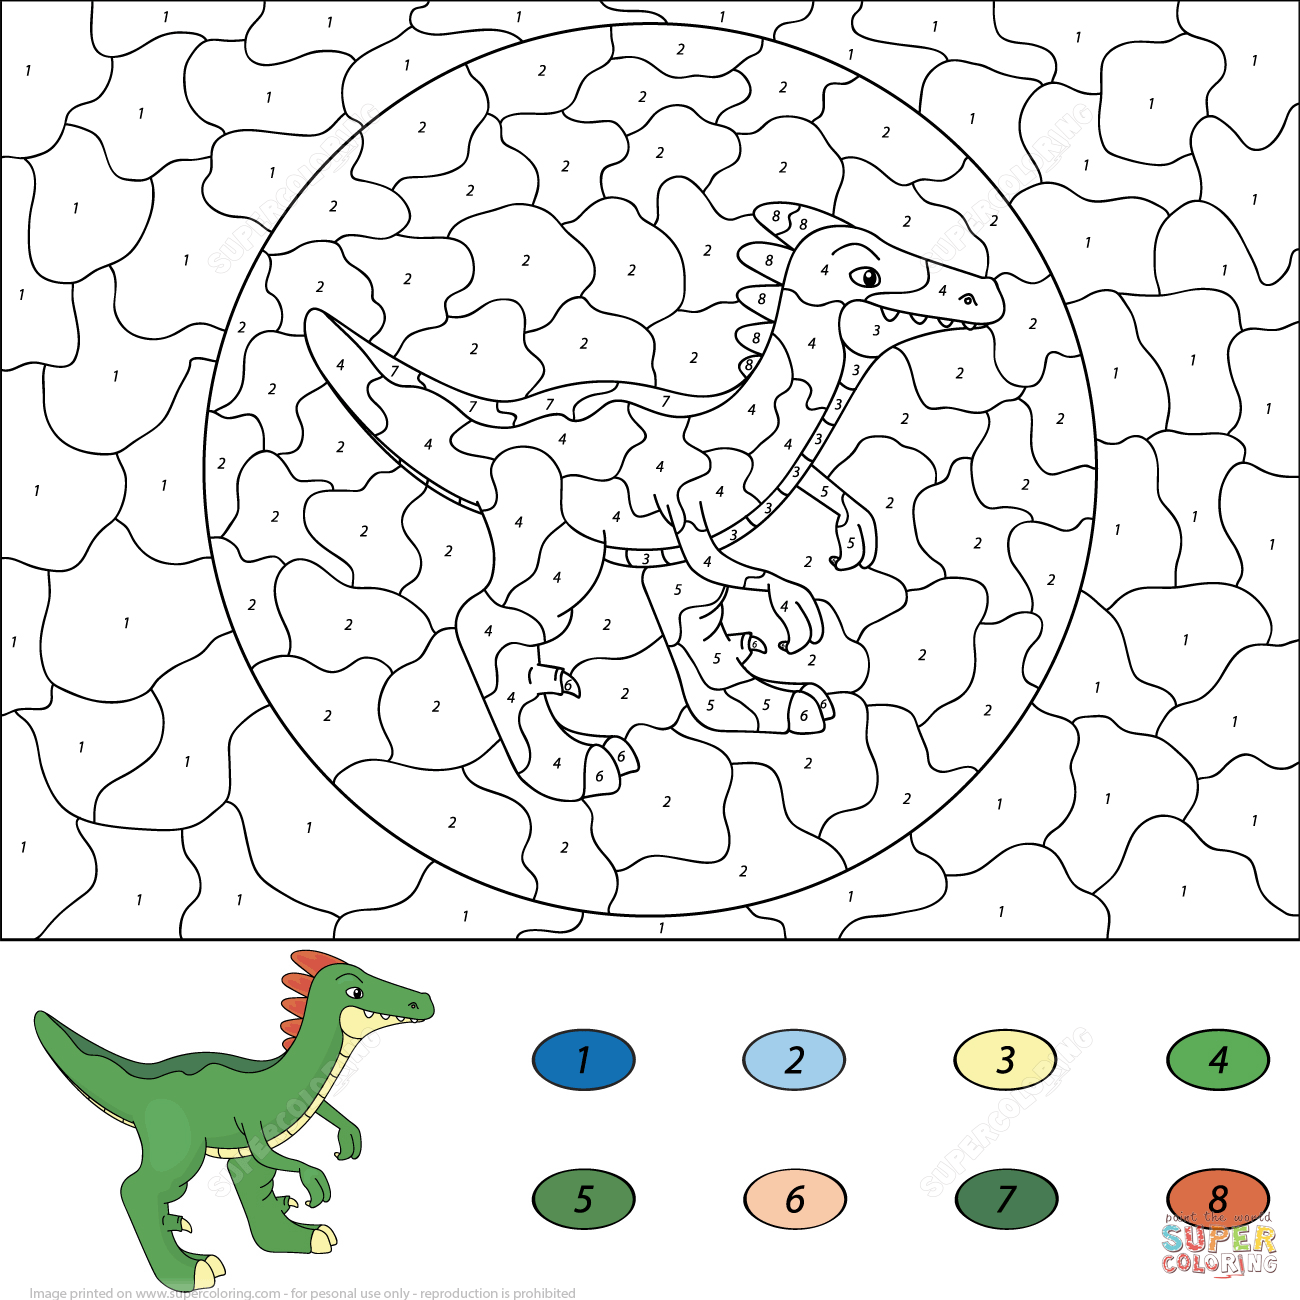 Number Color Dinosaur In